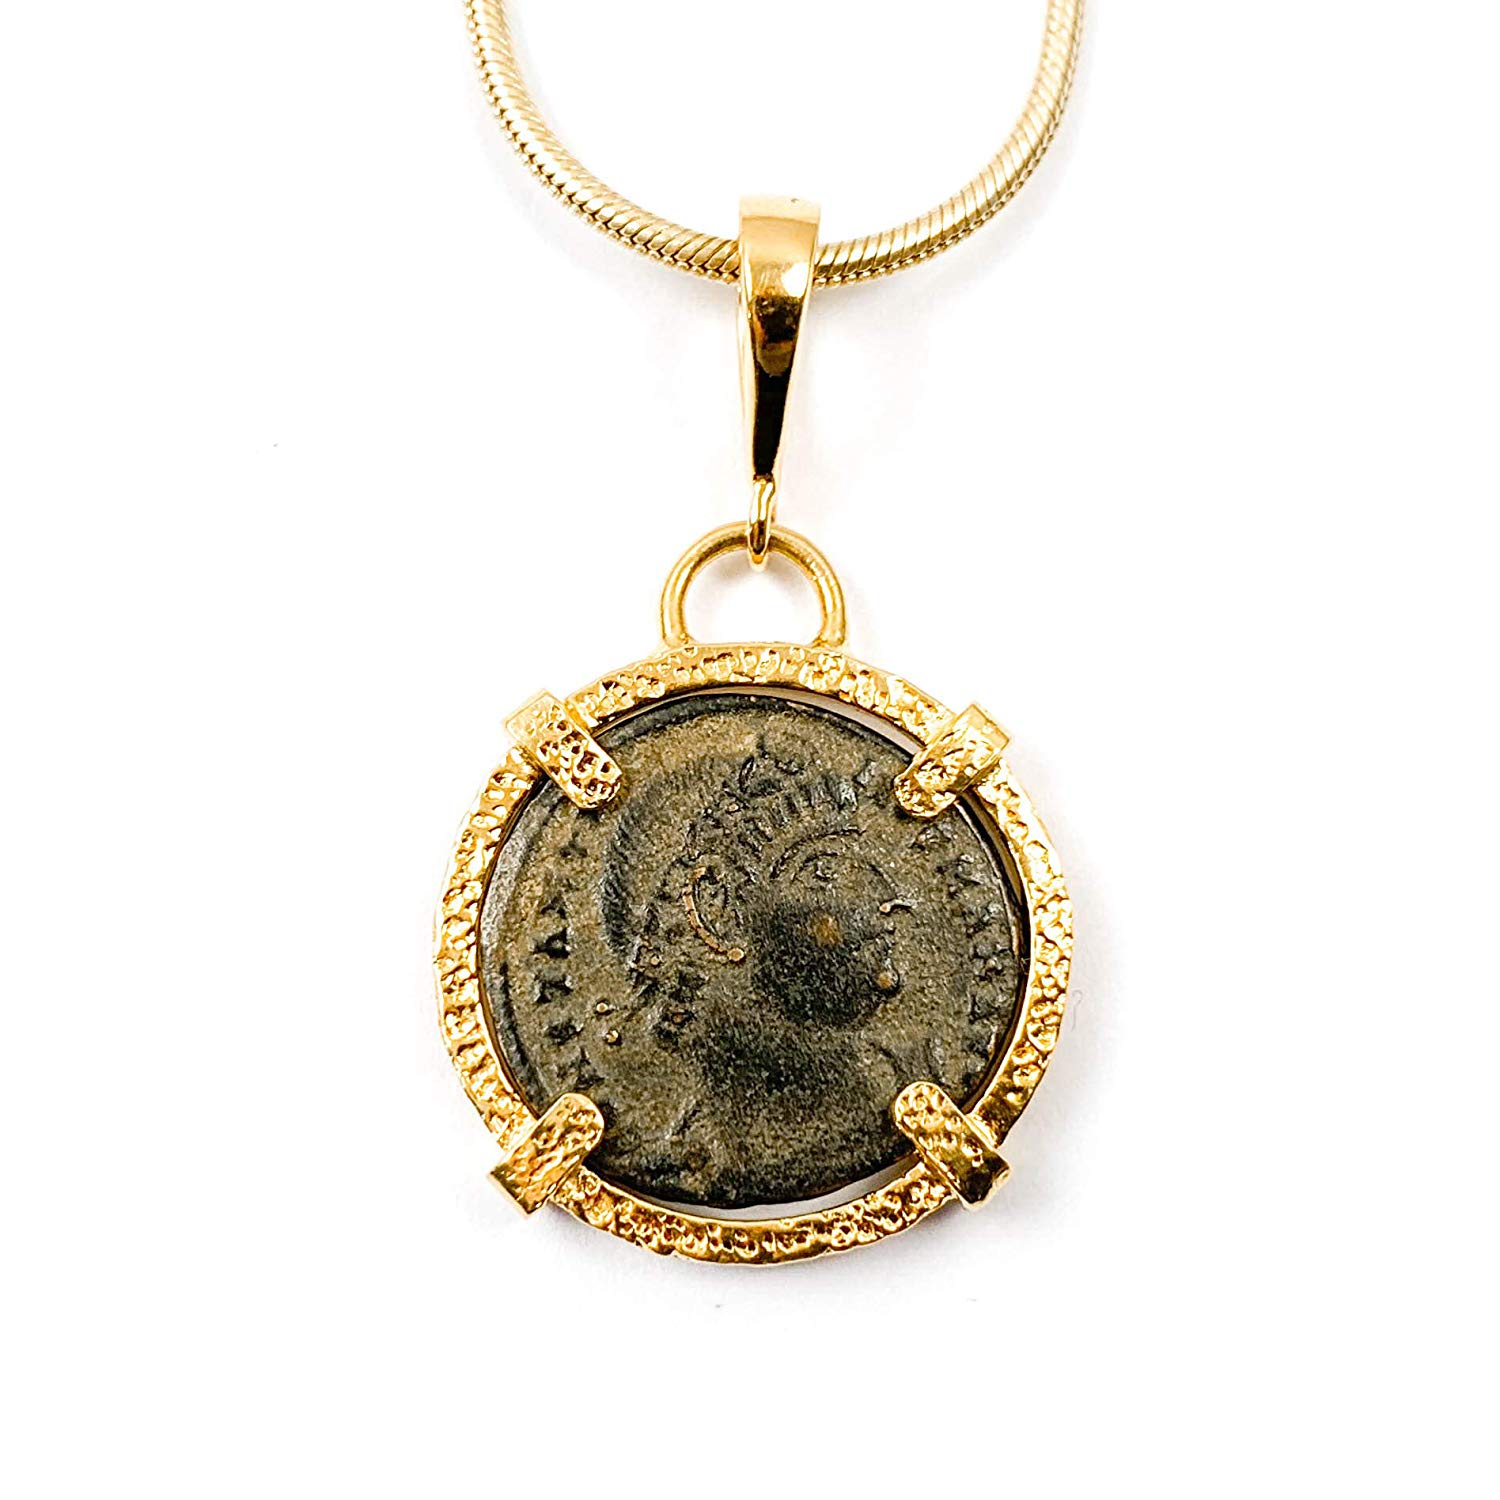 1c13bfb8016b Get Quotations · Genuine Ancient Roman Coin Charm Necklace with 14kt Gold  Filled Snake Chain - 16 inches Long